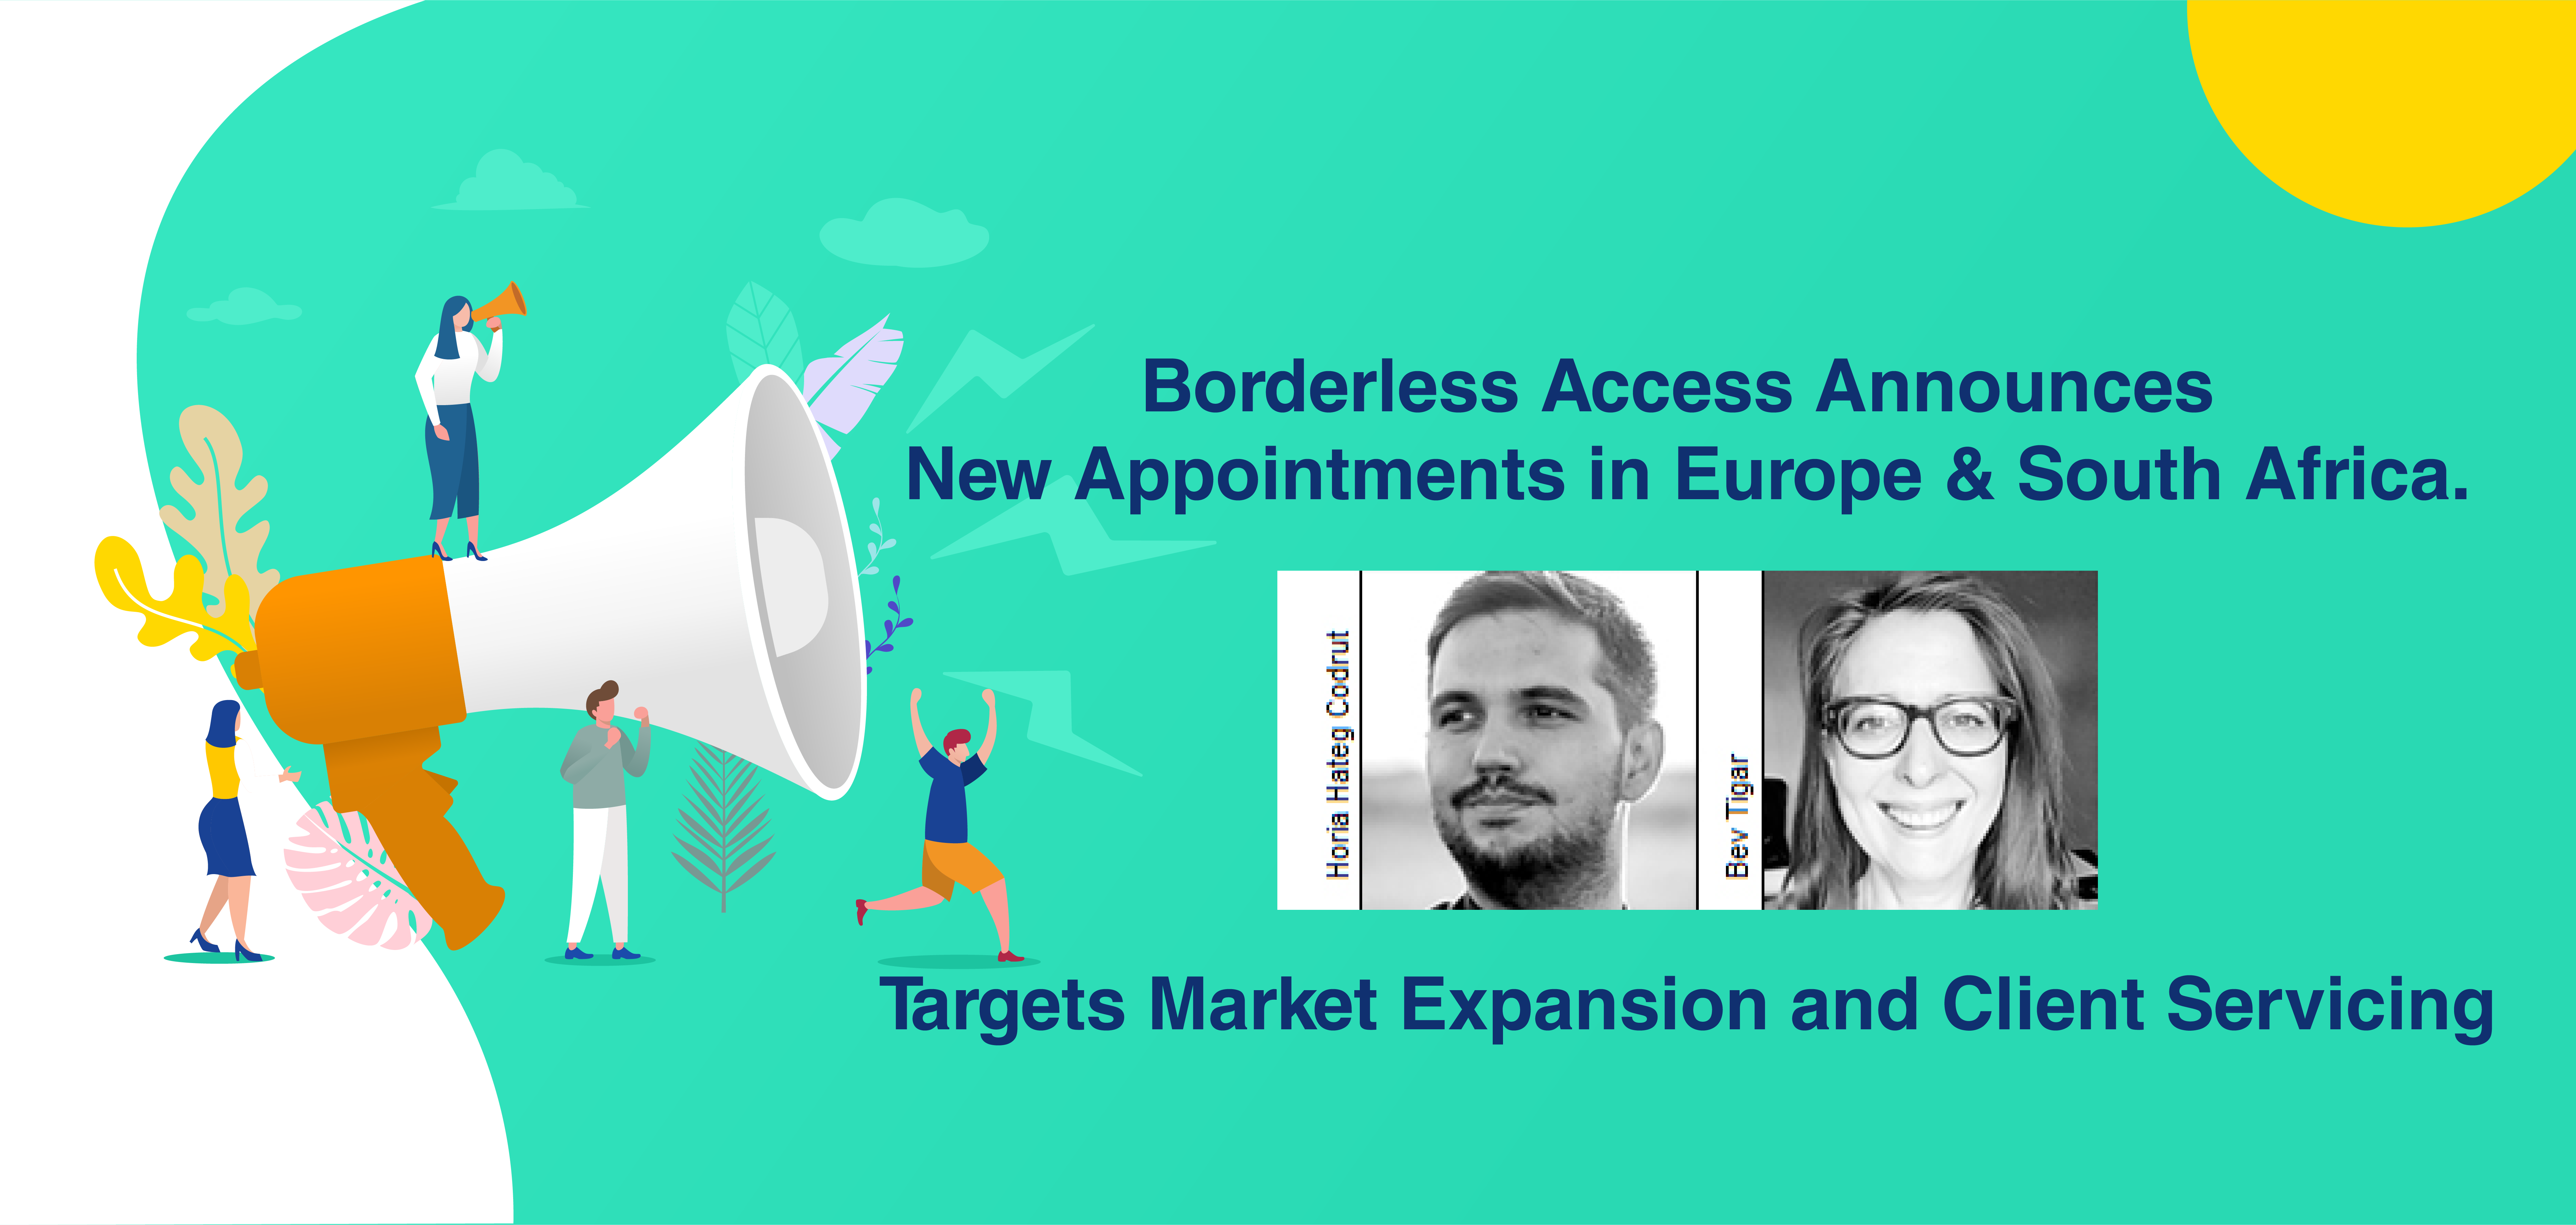 Borderless Access Strategically Positions itself for Regional Client Servicing & Insight Support